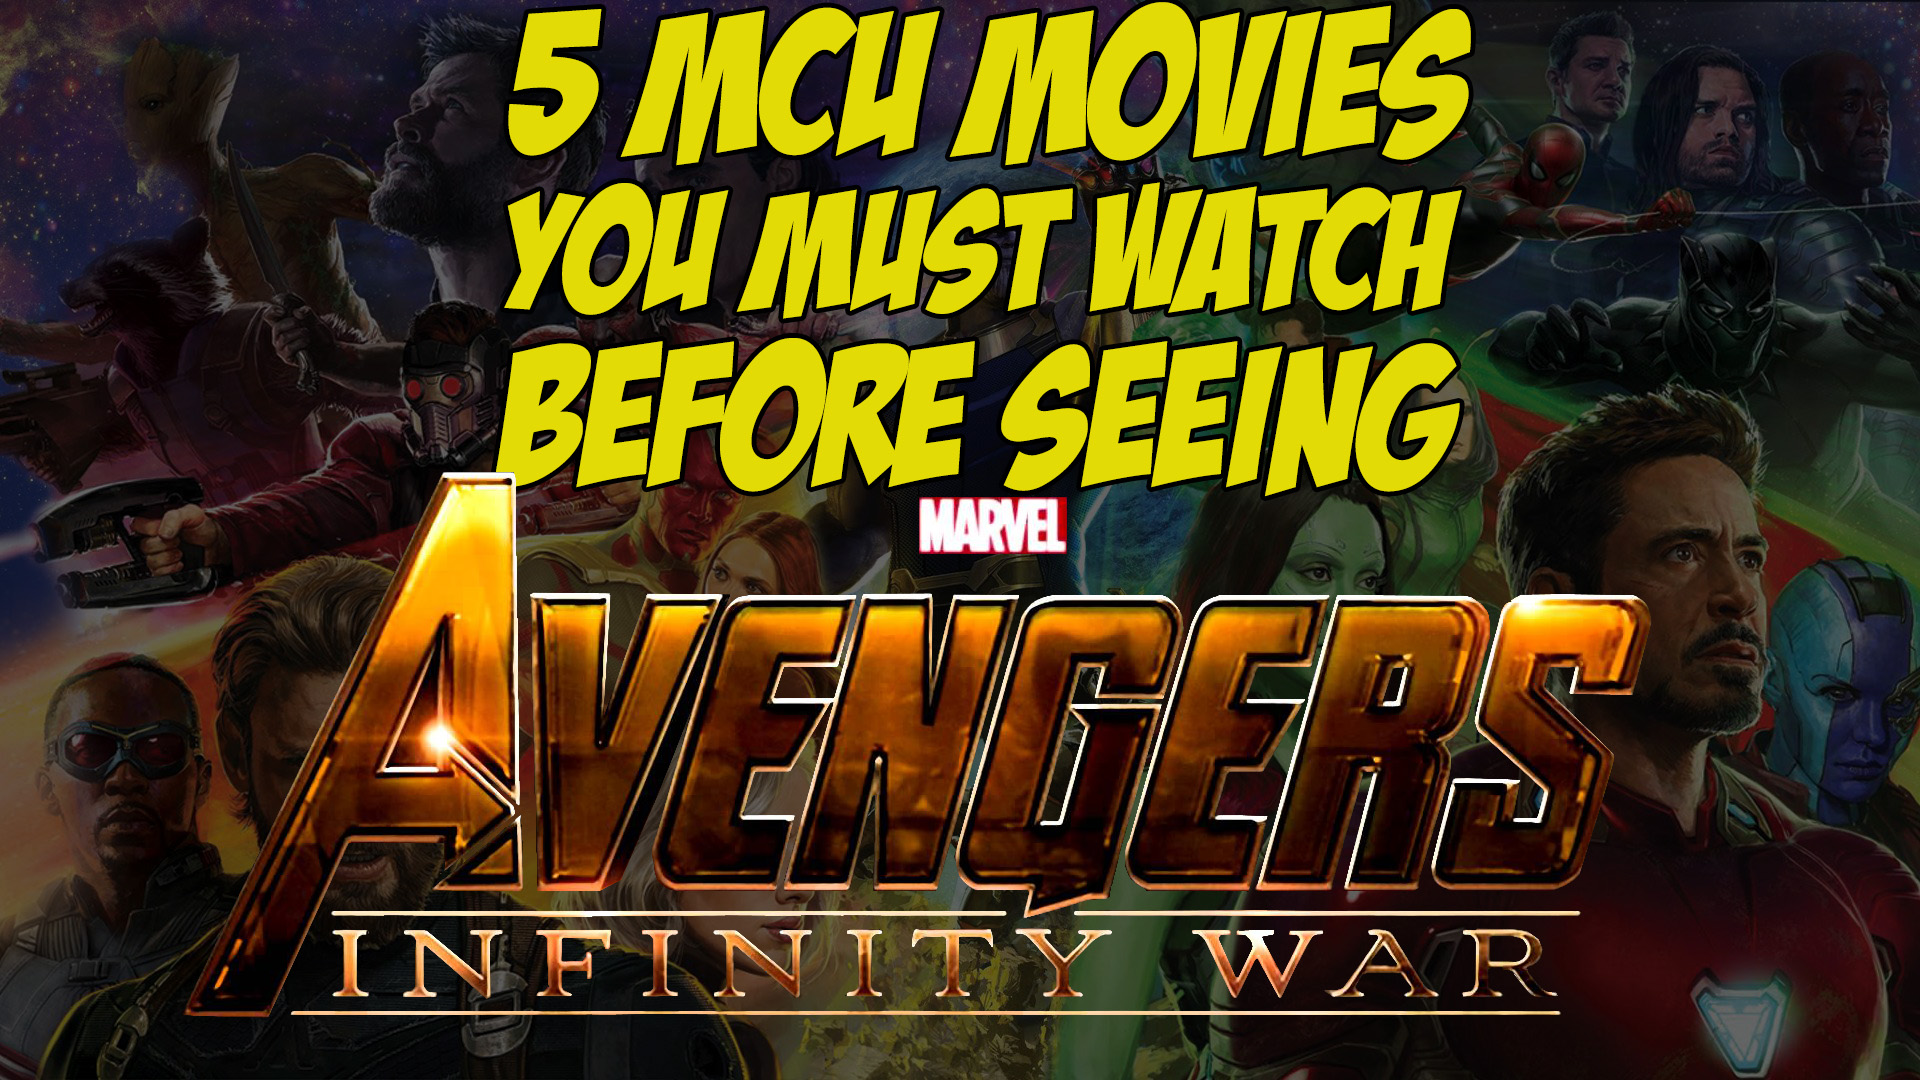 Give yourself a refresher course on the MCU.